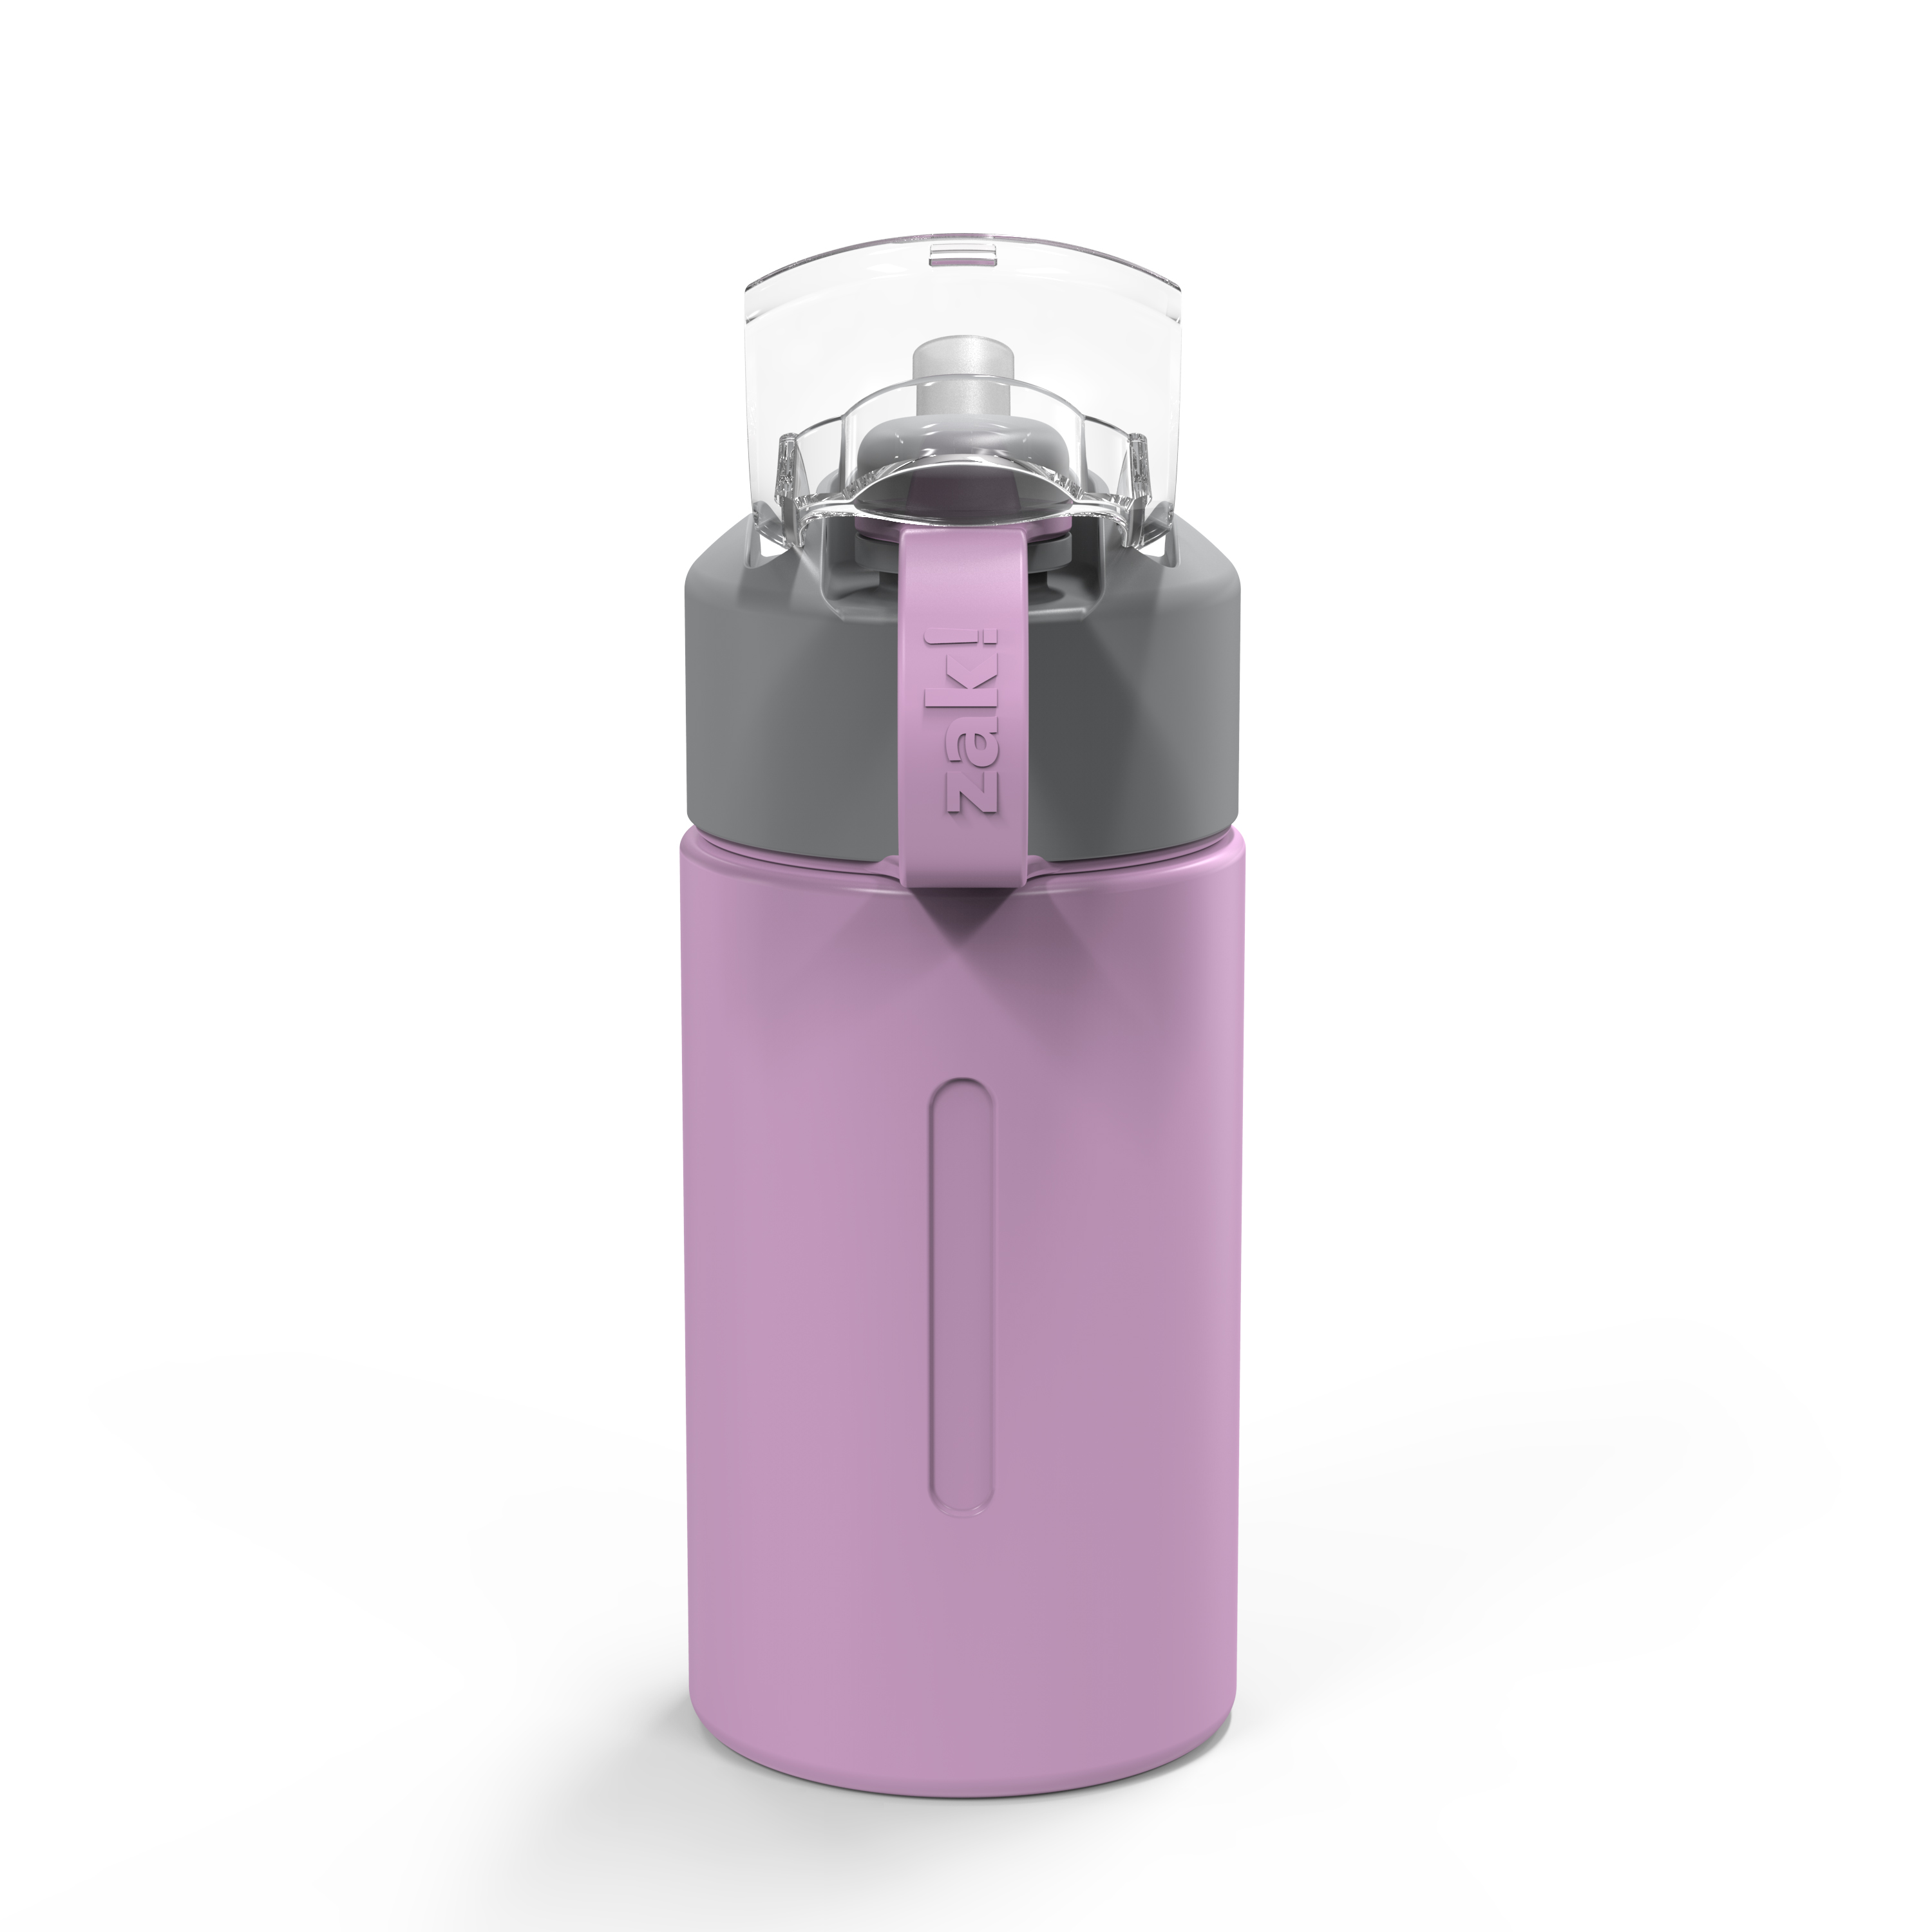 Genesis 12 ounce Vacuum Insulated Stainless Steel Tumbler, Lilac slideshow image 7